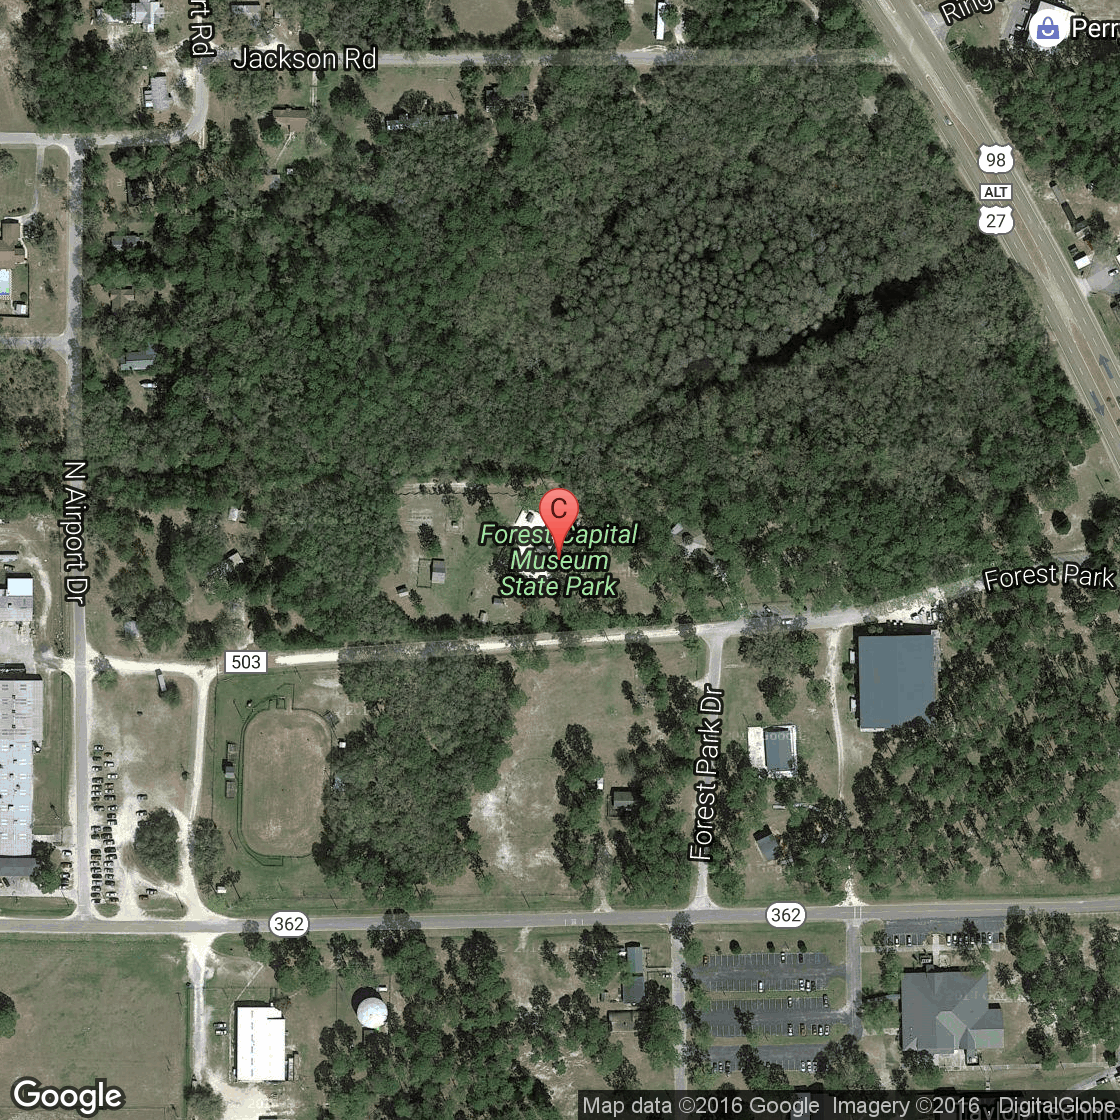 Forest Capital State Park In Florida USA Today - Florida map state parks